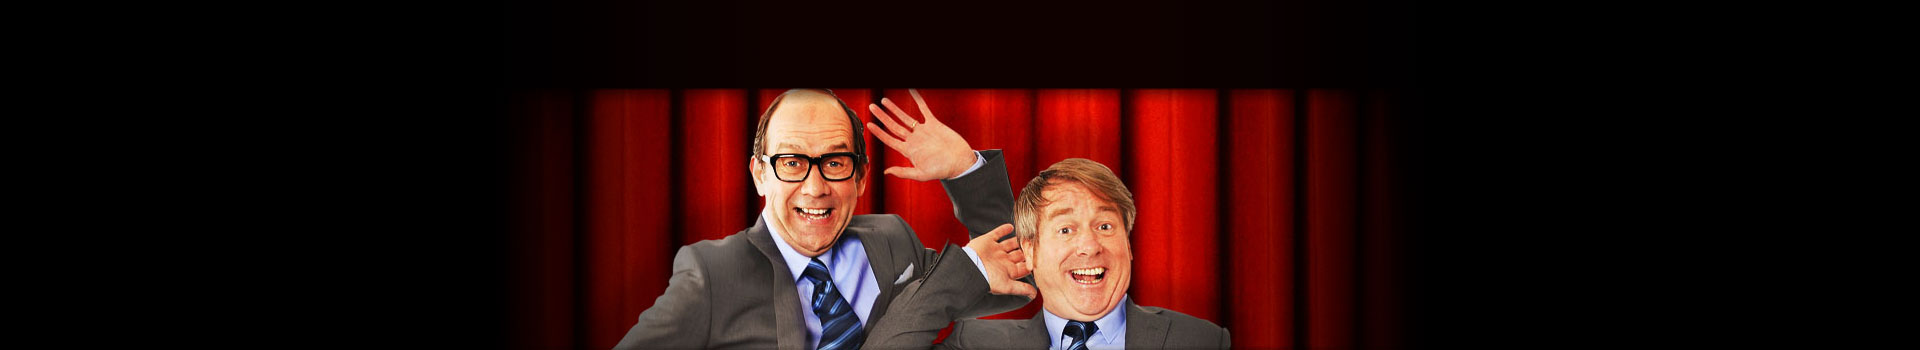 Eric and Little Ern banner image